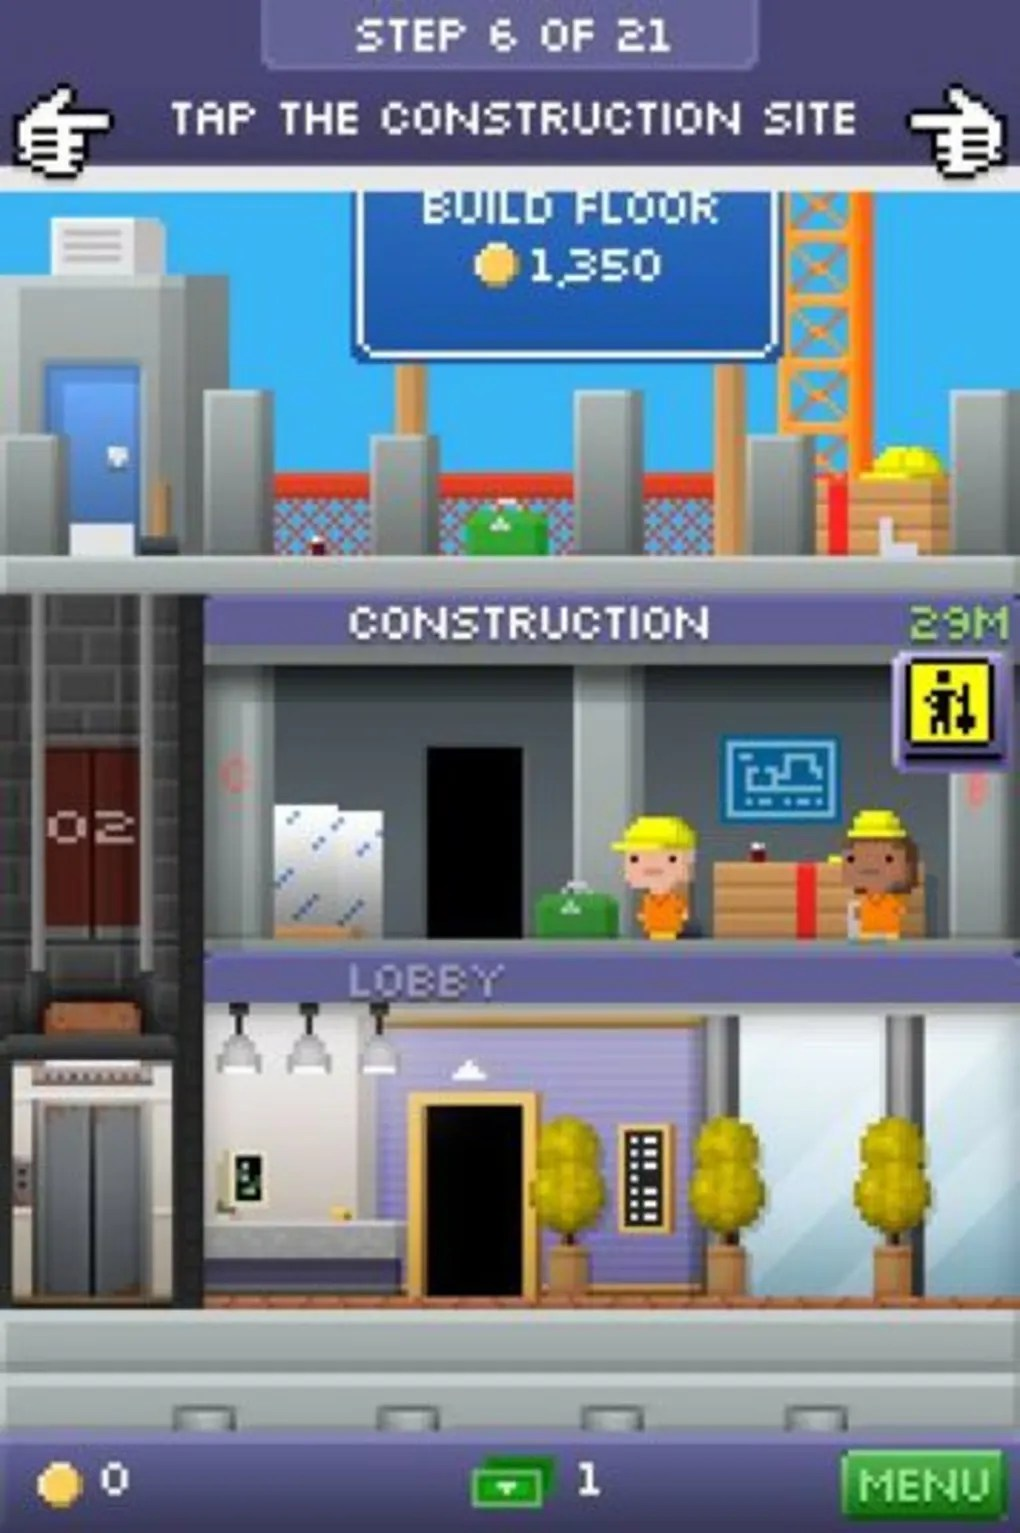 Verdieping Sims Freeplay Tiny Tower Voor Android Download